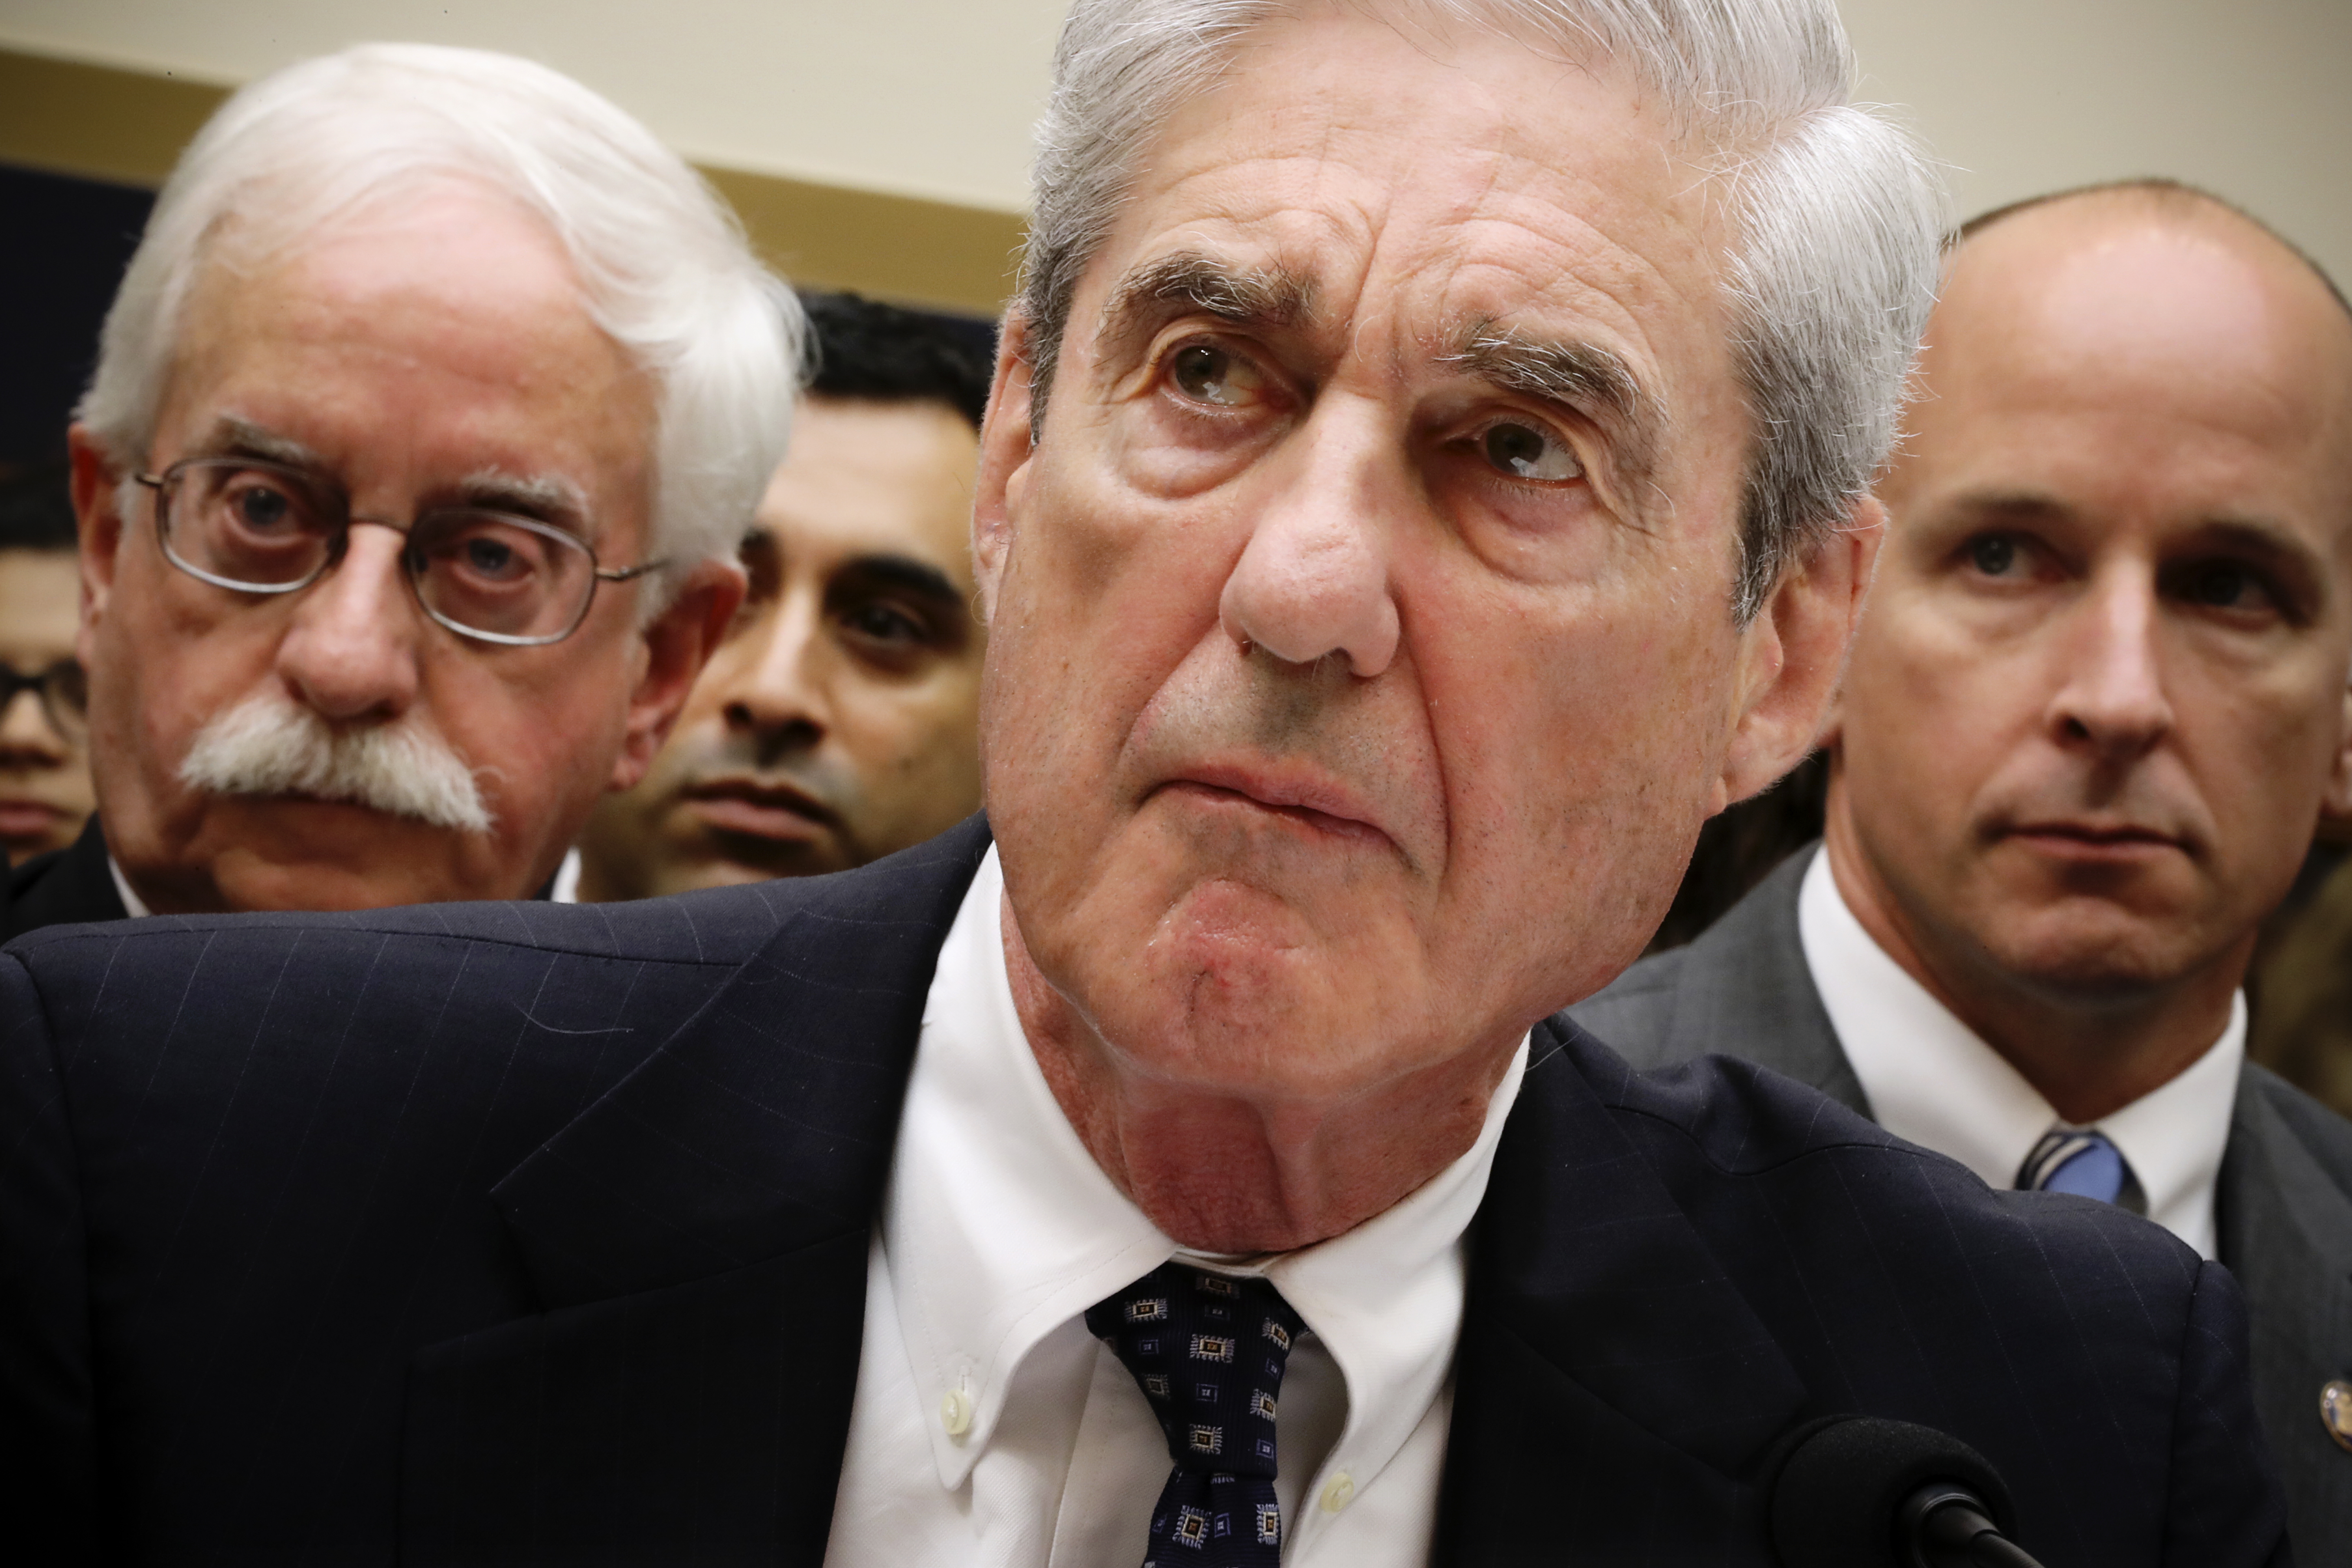 Mueller said Trump could be indicted once he leaves office